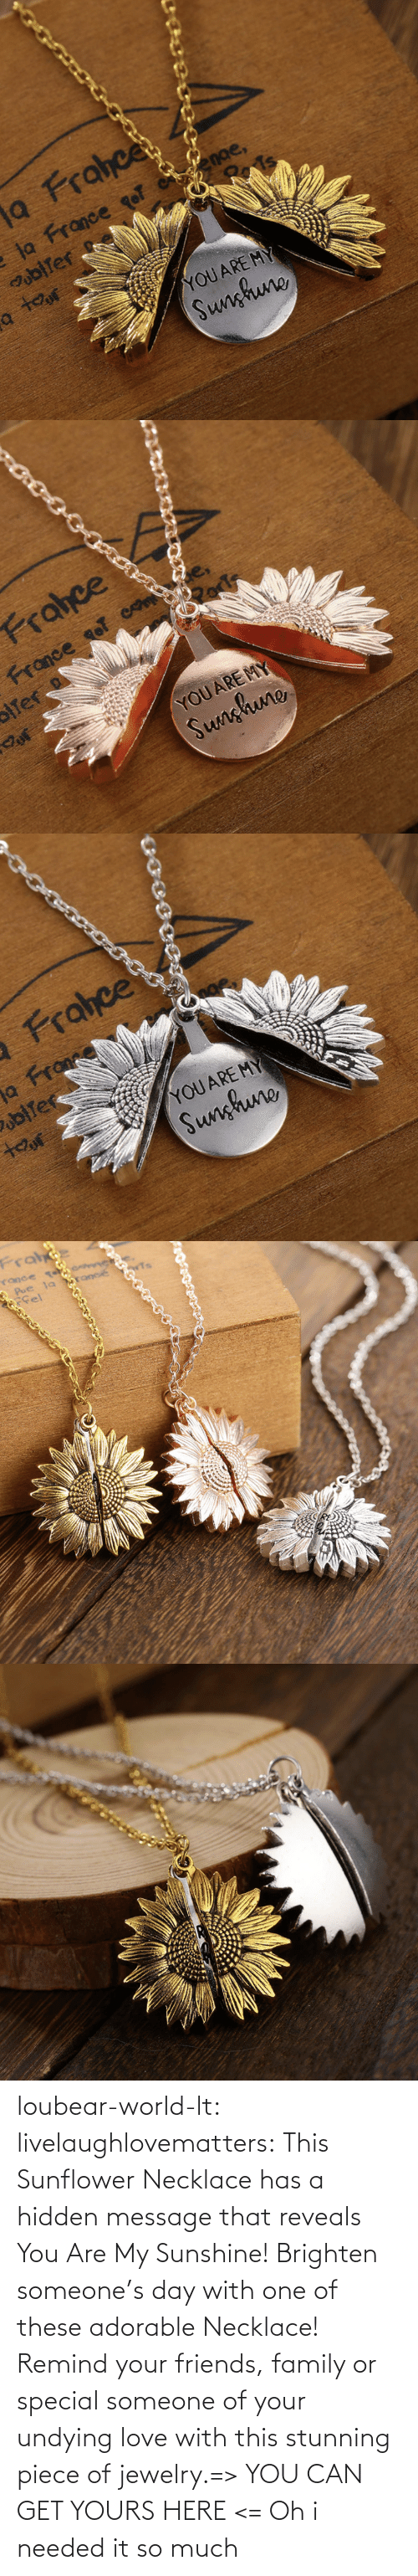 hidden: loubear-world-lt:  livelaughlovematters:  This Sunflower Necklace has a hidden message that reveals You Are My Sunshine! Brighten someone's day with one of these adorable Necklace! Remind your friends, family or special someone of your undying love with this stunning piece of jewelry.=> YOU CAN GET YOURS HERE <=   Oh i needed it so much